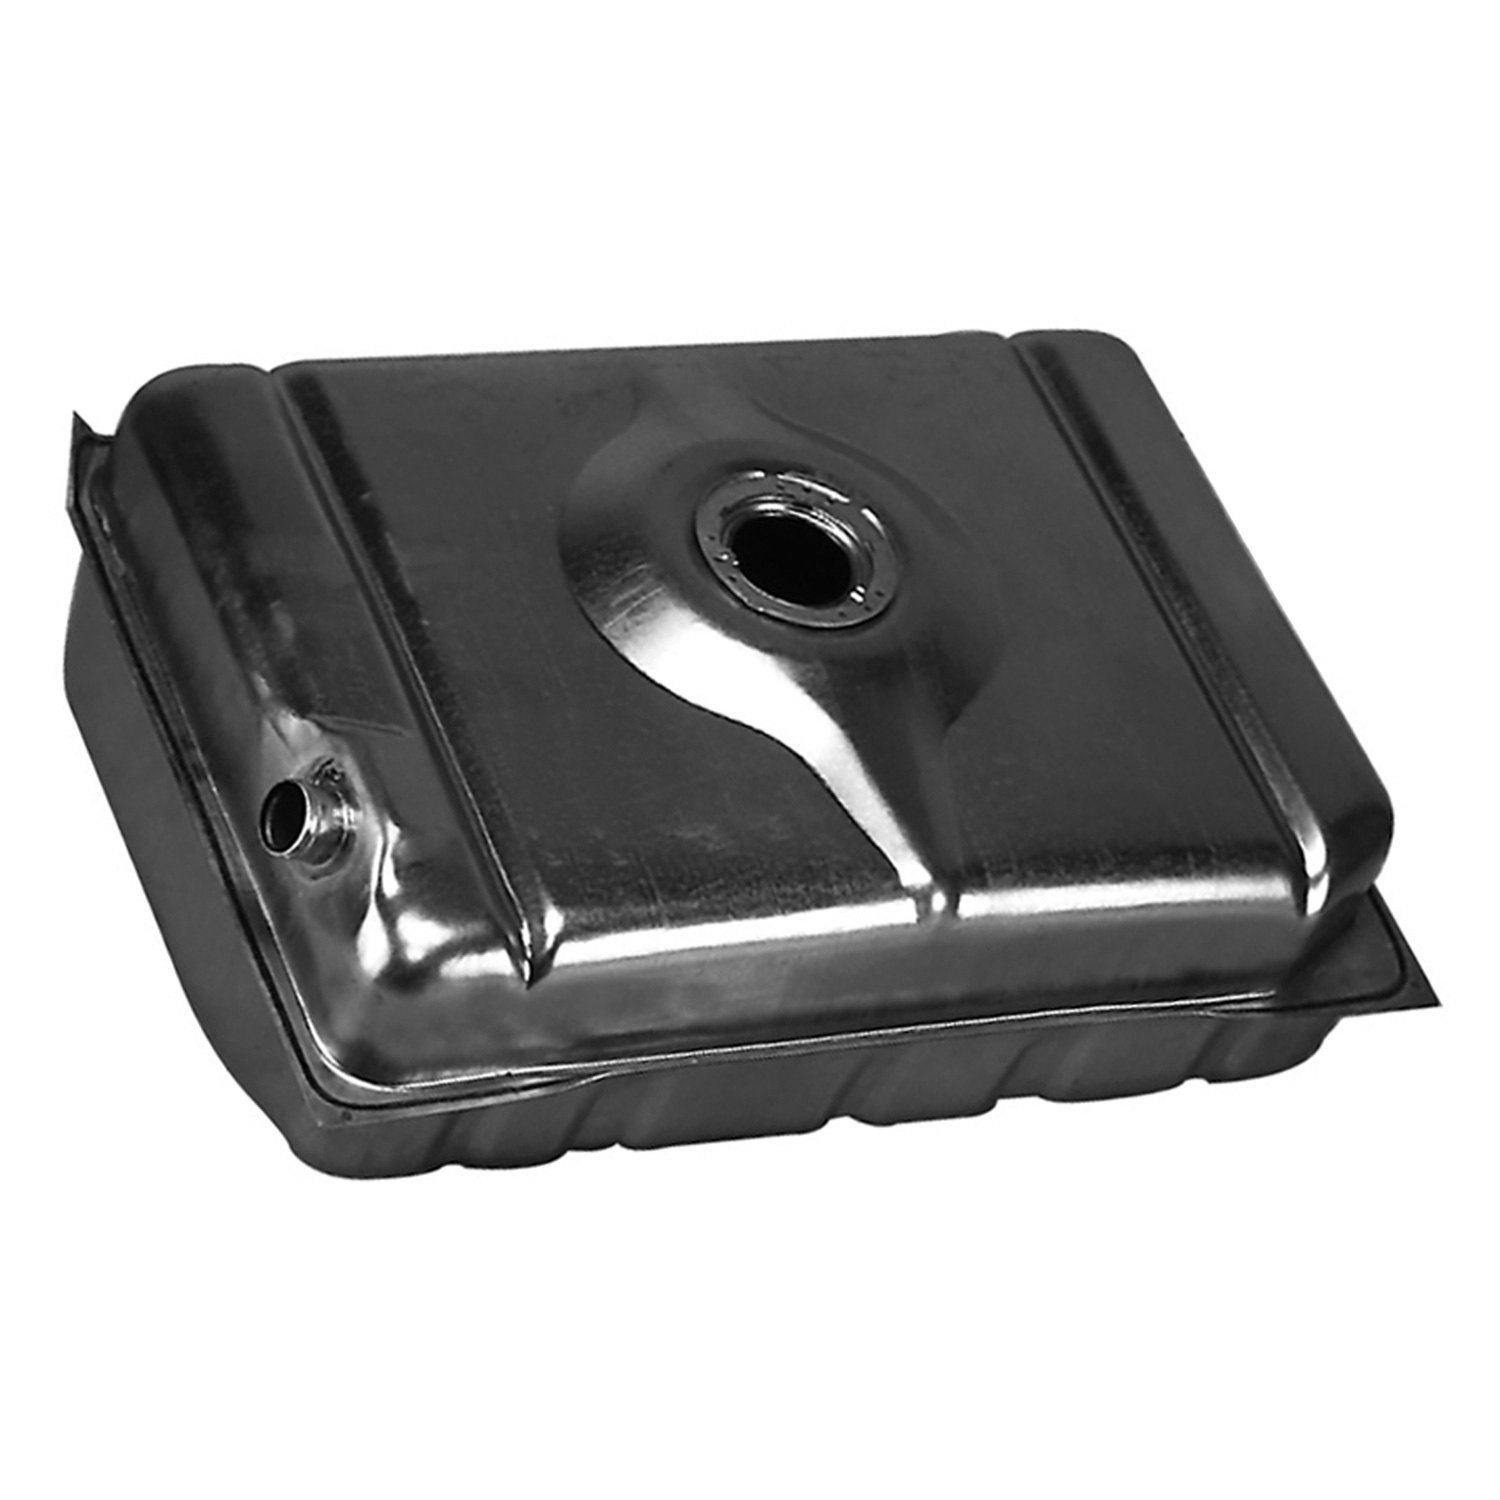 For Chevy G30 1983-1996 Replace FTK010287 Fuel Tank